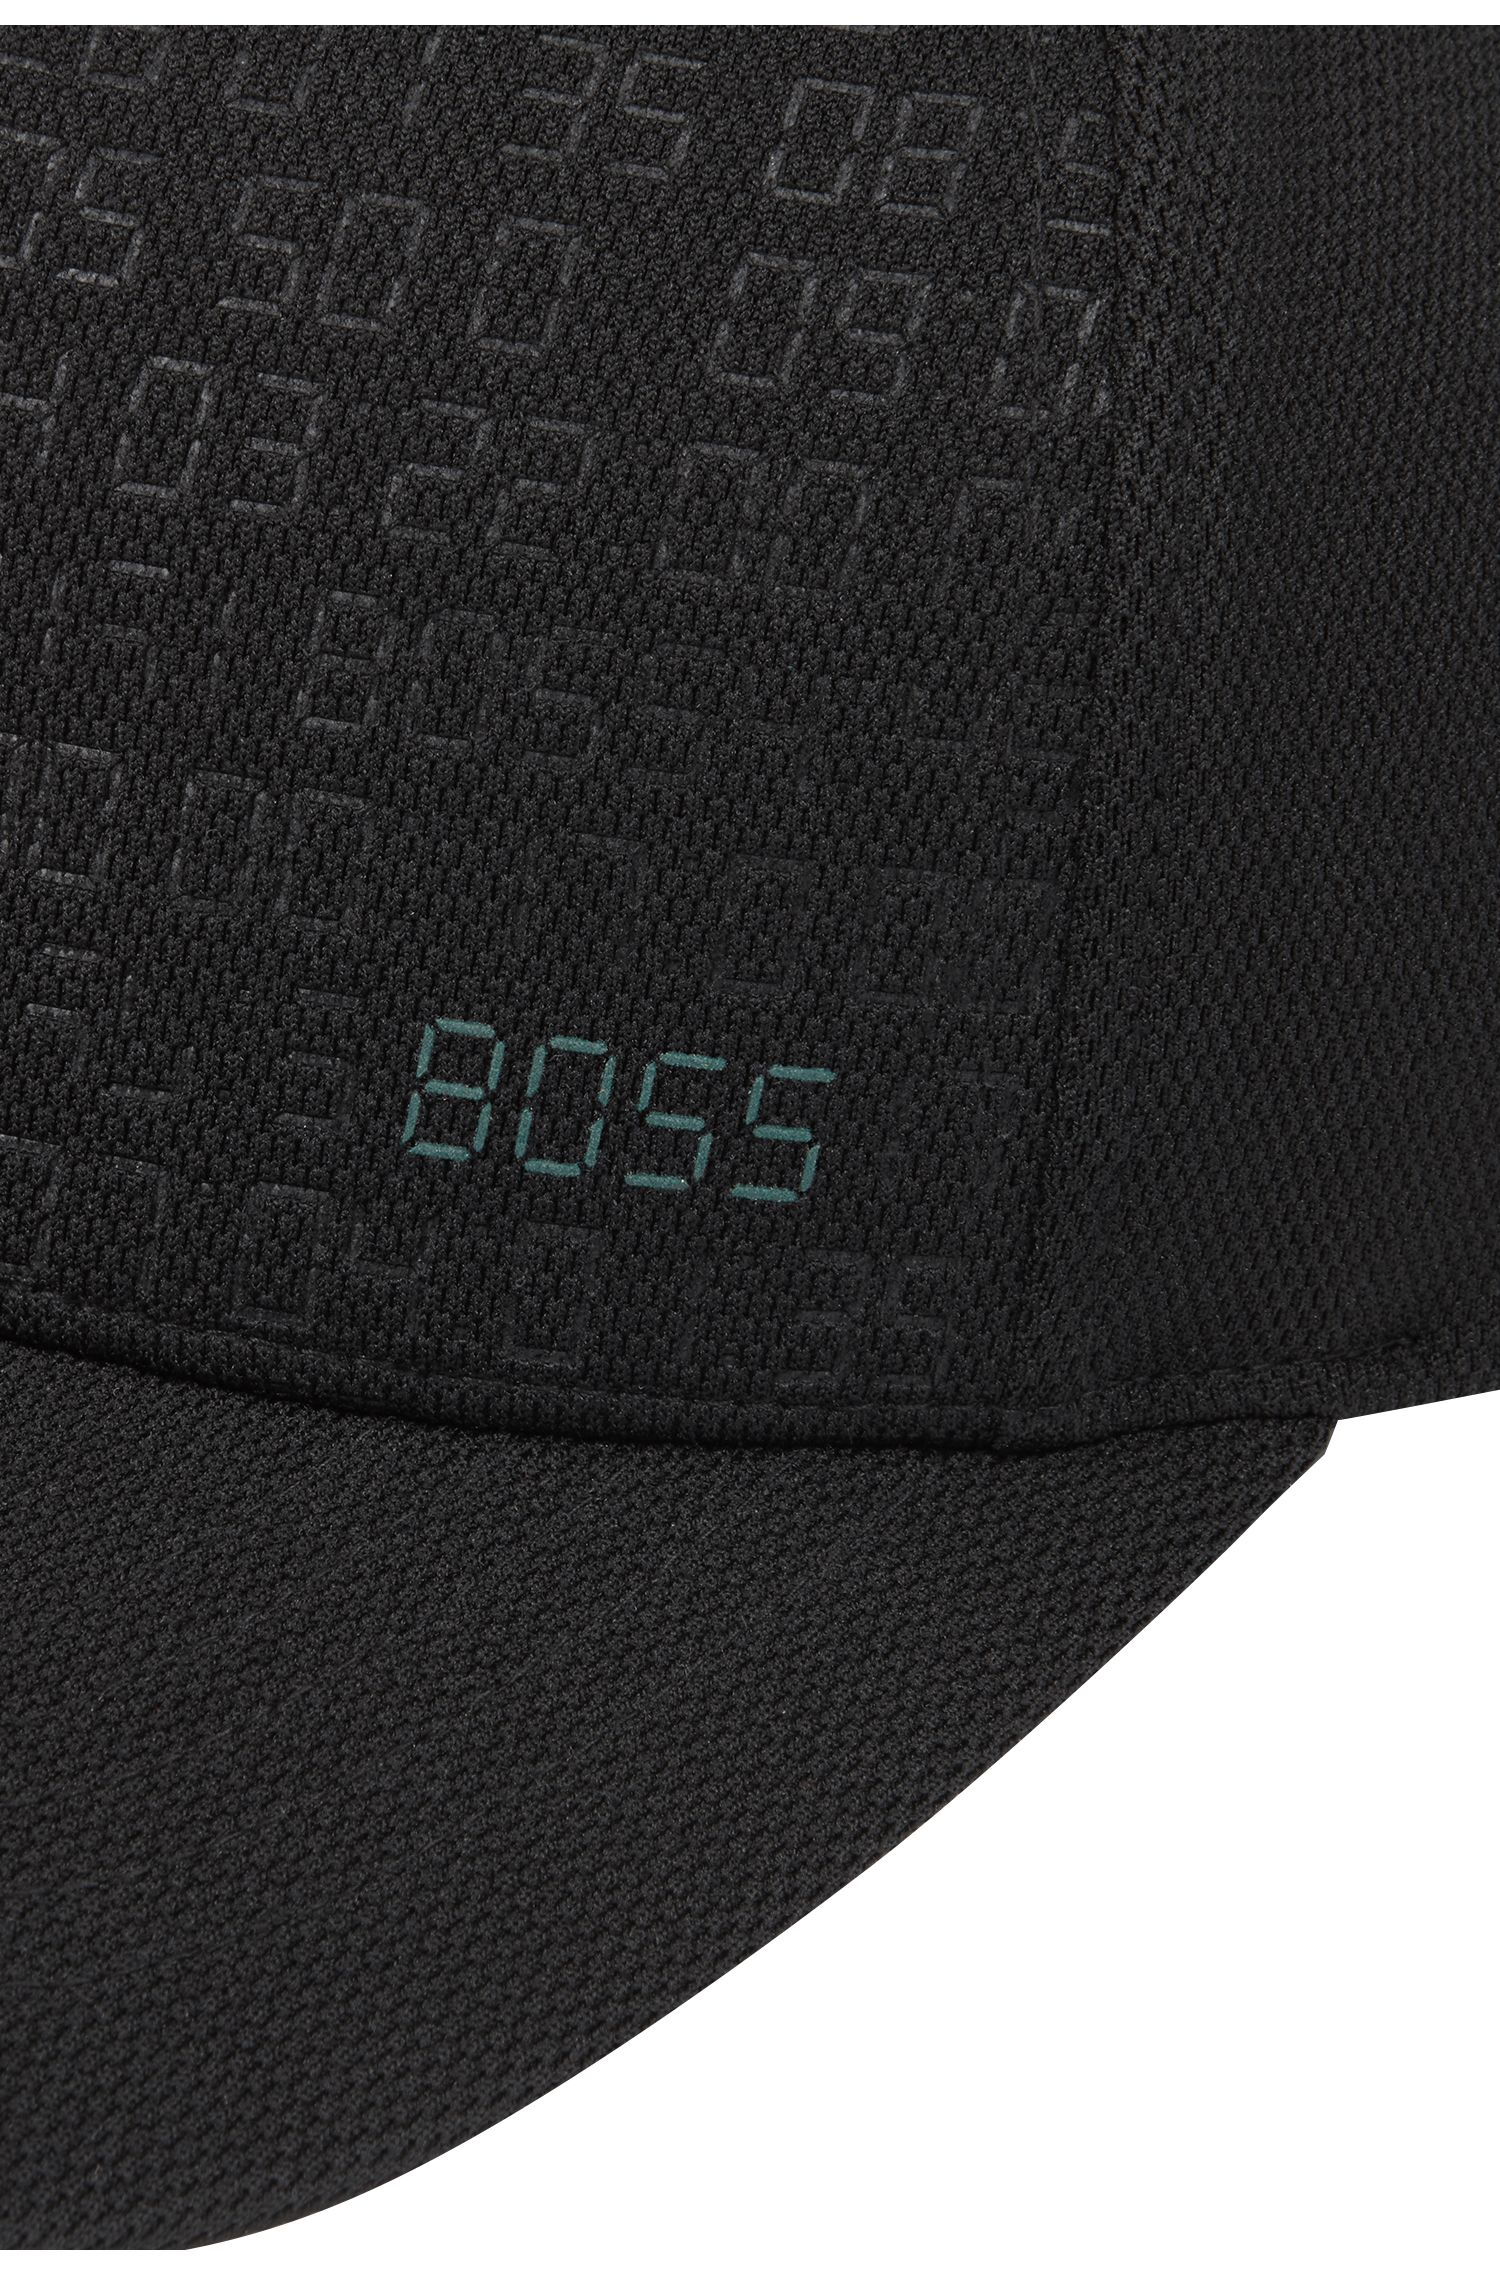 Digital-patterned cap with reflective logo and adjustable closure, Black